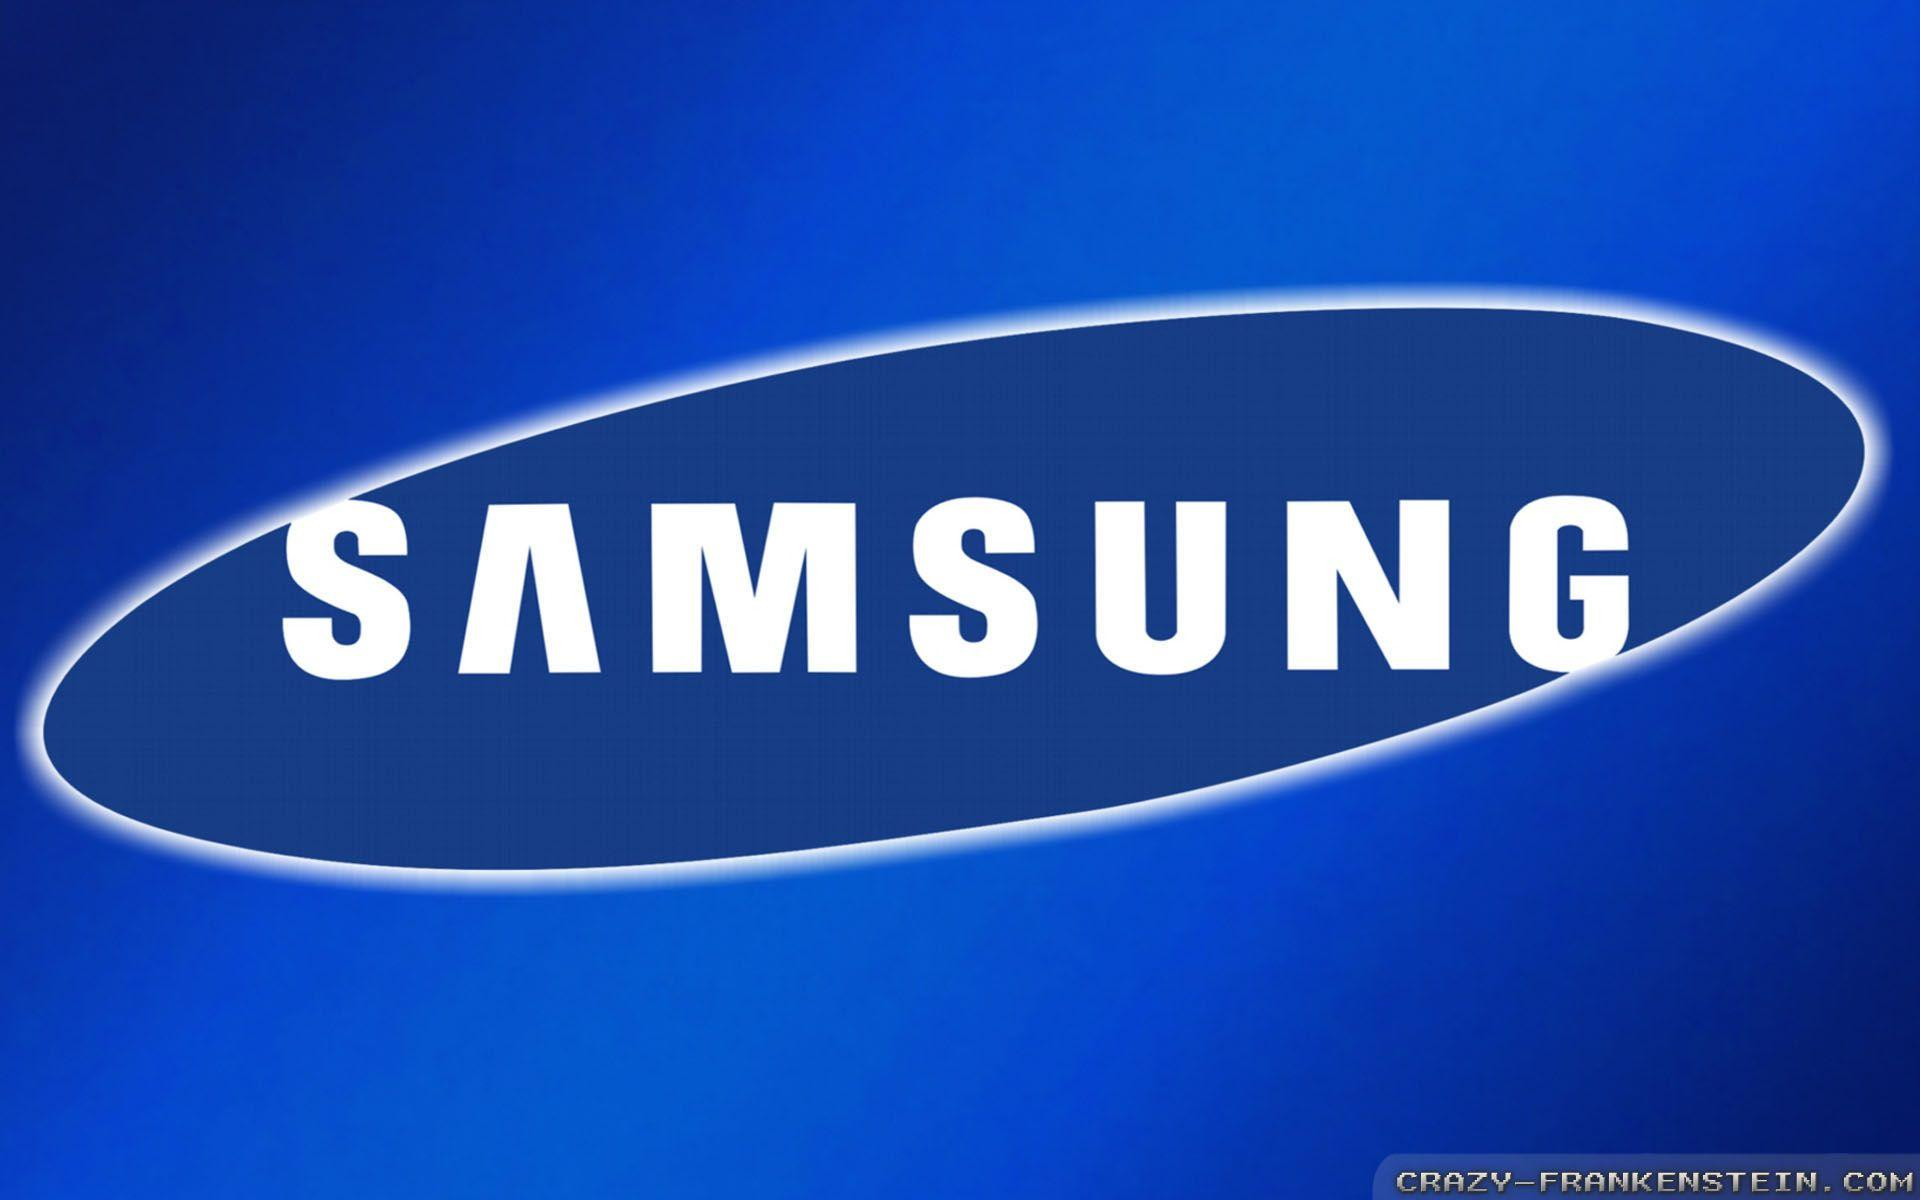 Samsung Logo Wallpapers 1920x1200